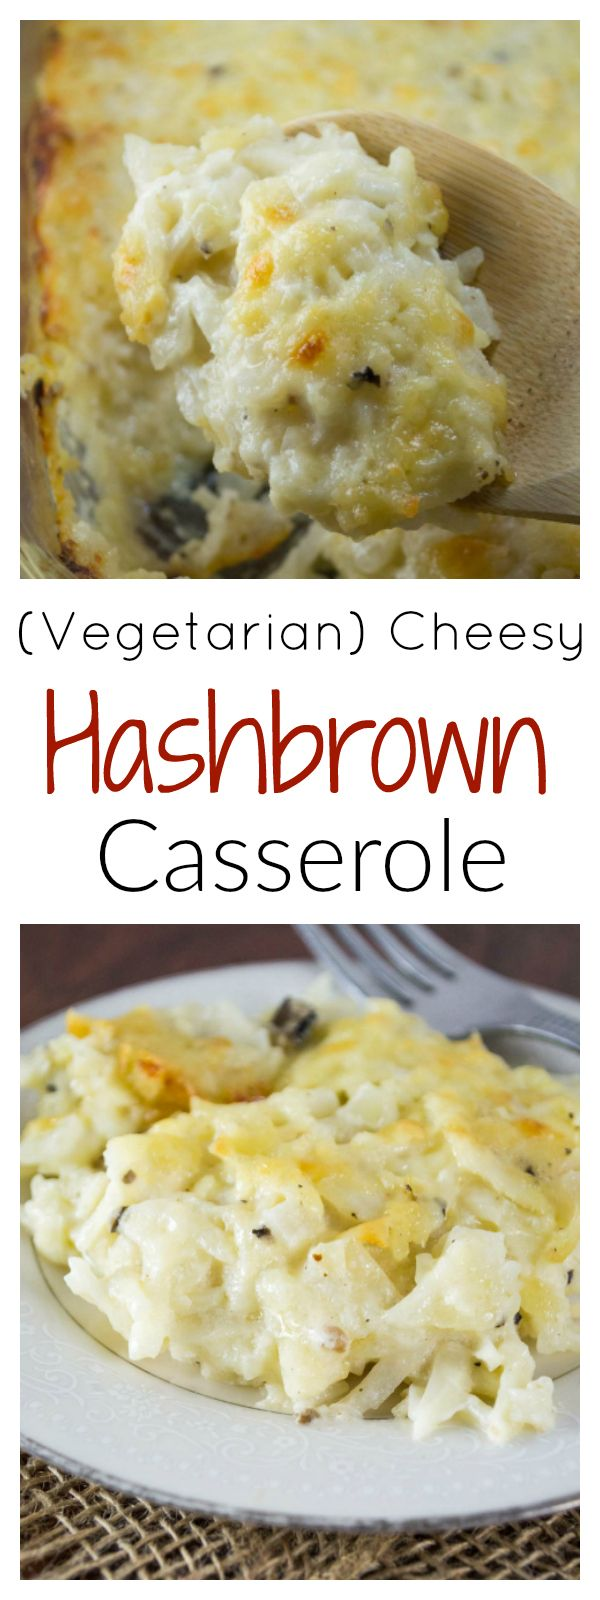 Vegetarian Cheesy Hashbrown Casserole